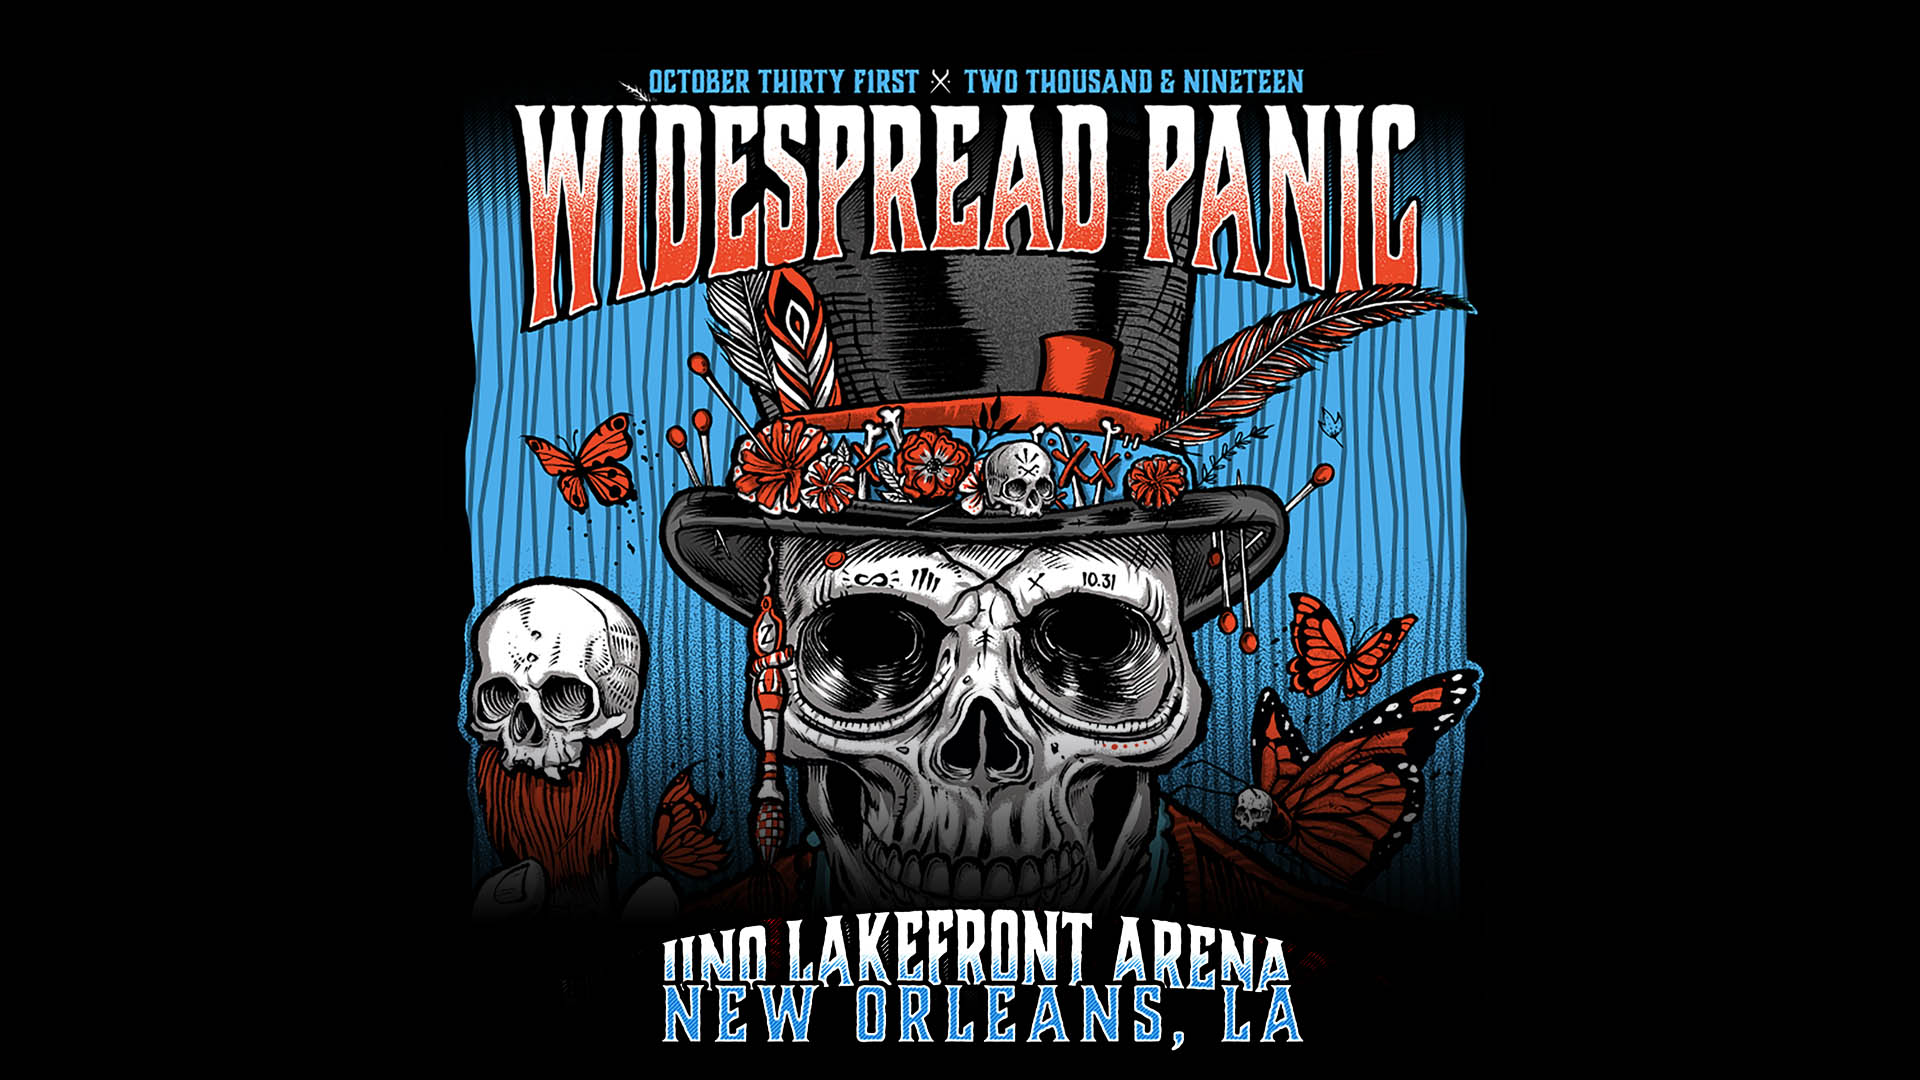 Widespread Panic Live in New Orleans 10/31/2019